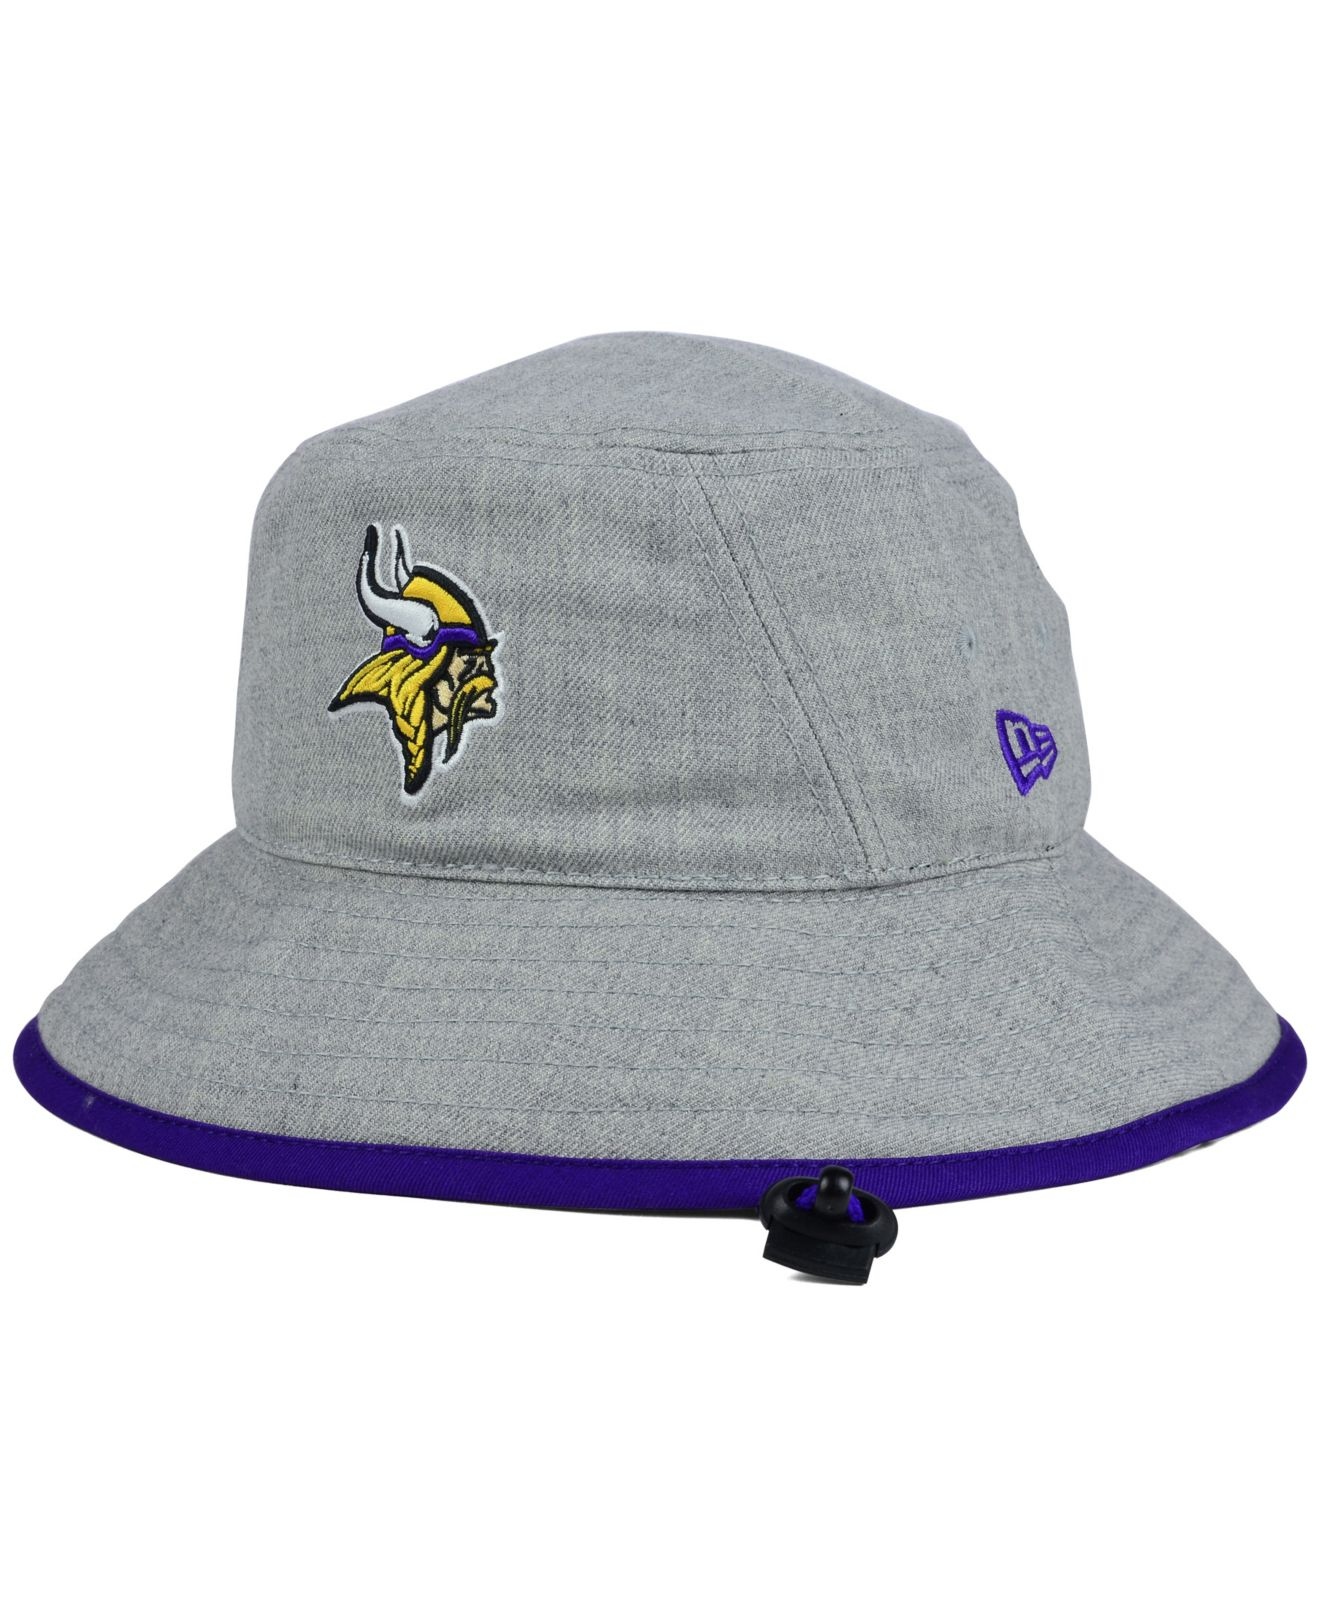 outlet store 244be c3009 ... discount lyst ktz minnesota vikings nfl heather gray bucket hat in gray  7ba2a 7b198